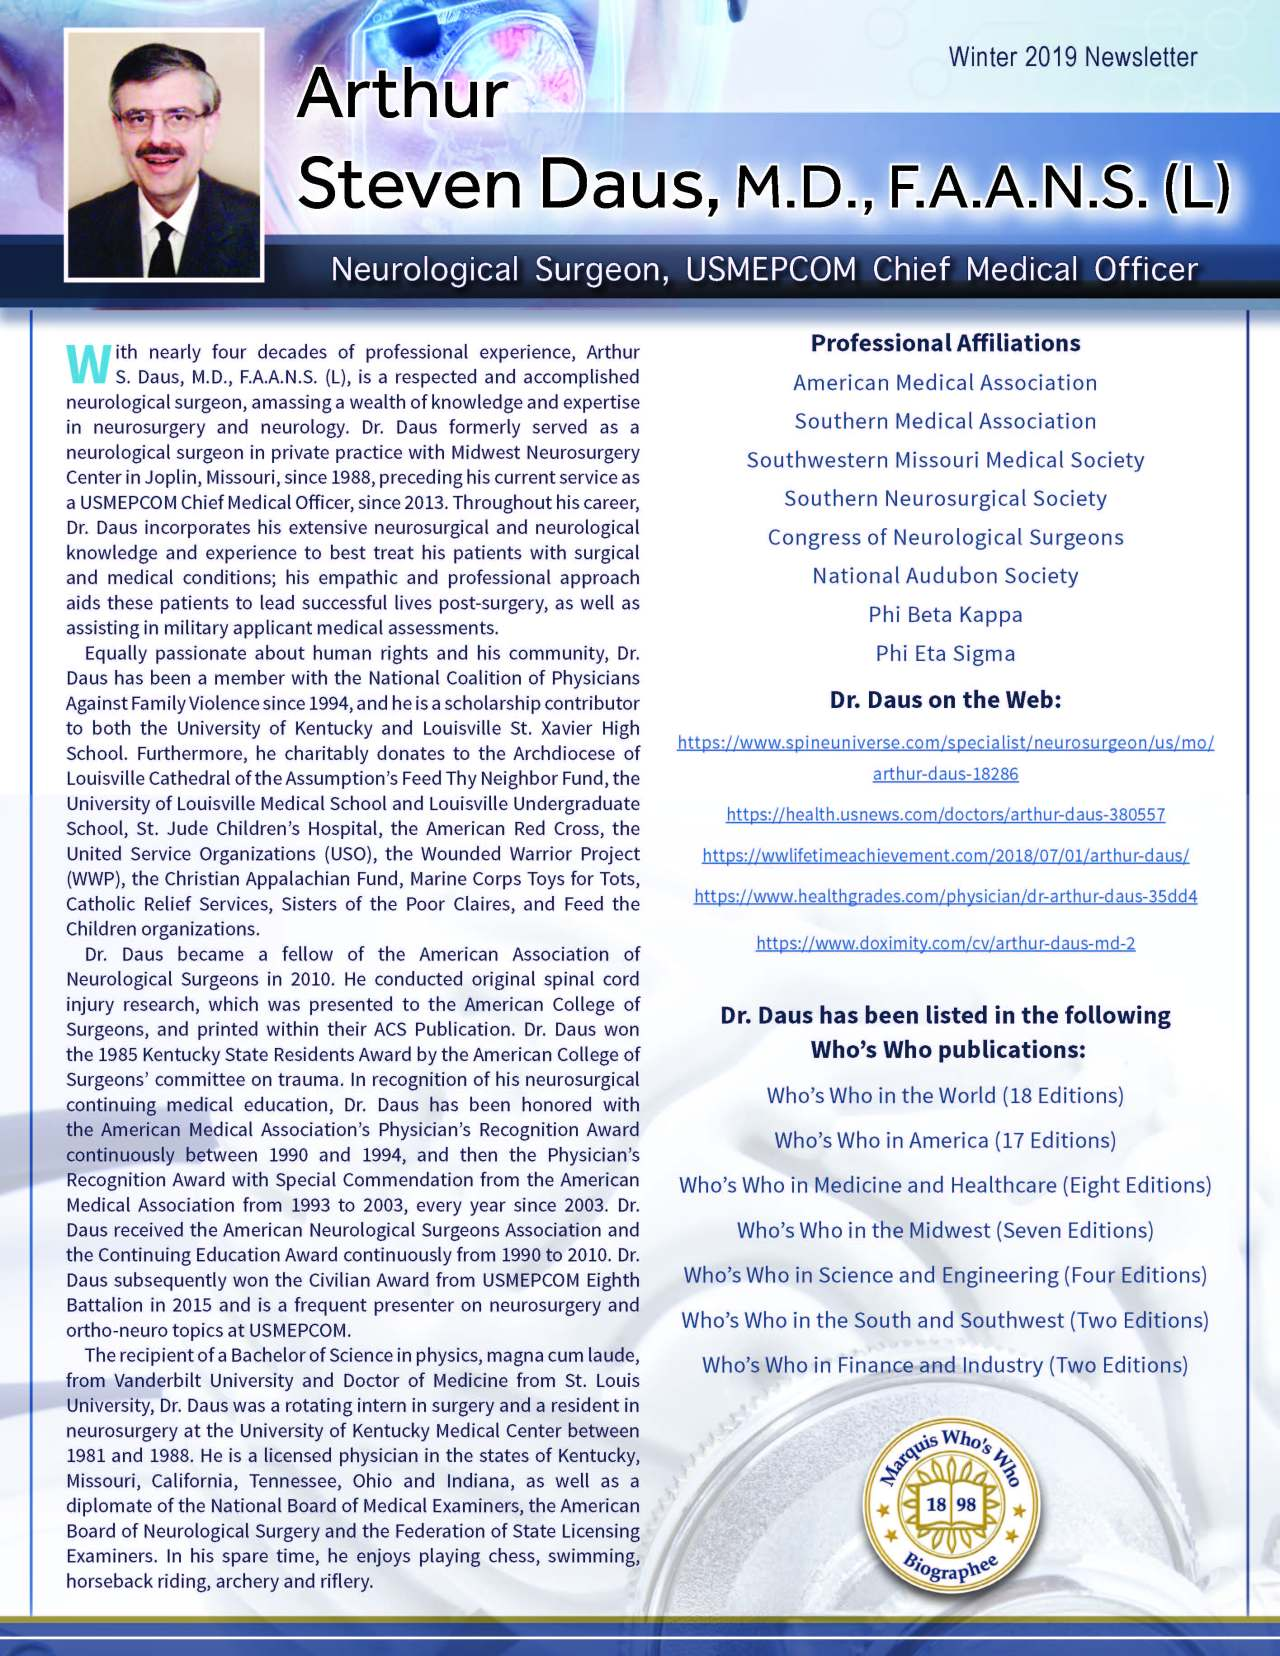 Daus, Arthur 3962683_26192732 Newsletter REVISED.jpg